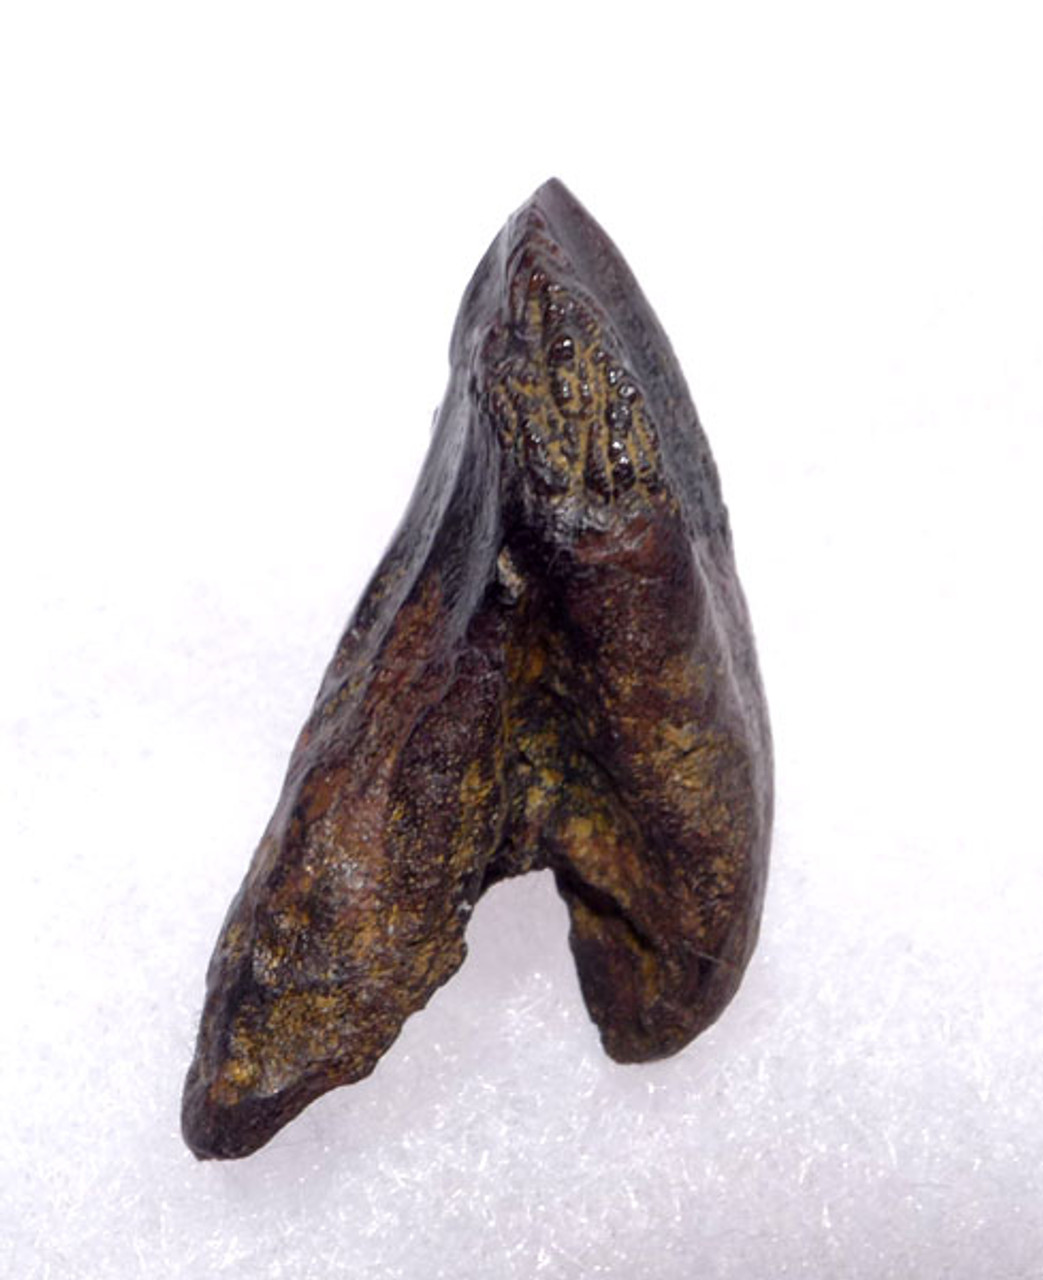 DT19-045 - PERFECT AND COMPLETE  SUB-ADULT TRICERATOPS TOOTH WITH UNWORN FULL CROWN AND ROOT